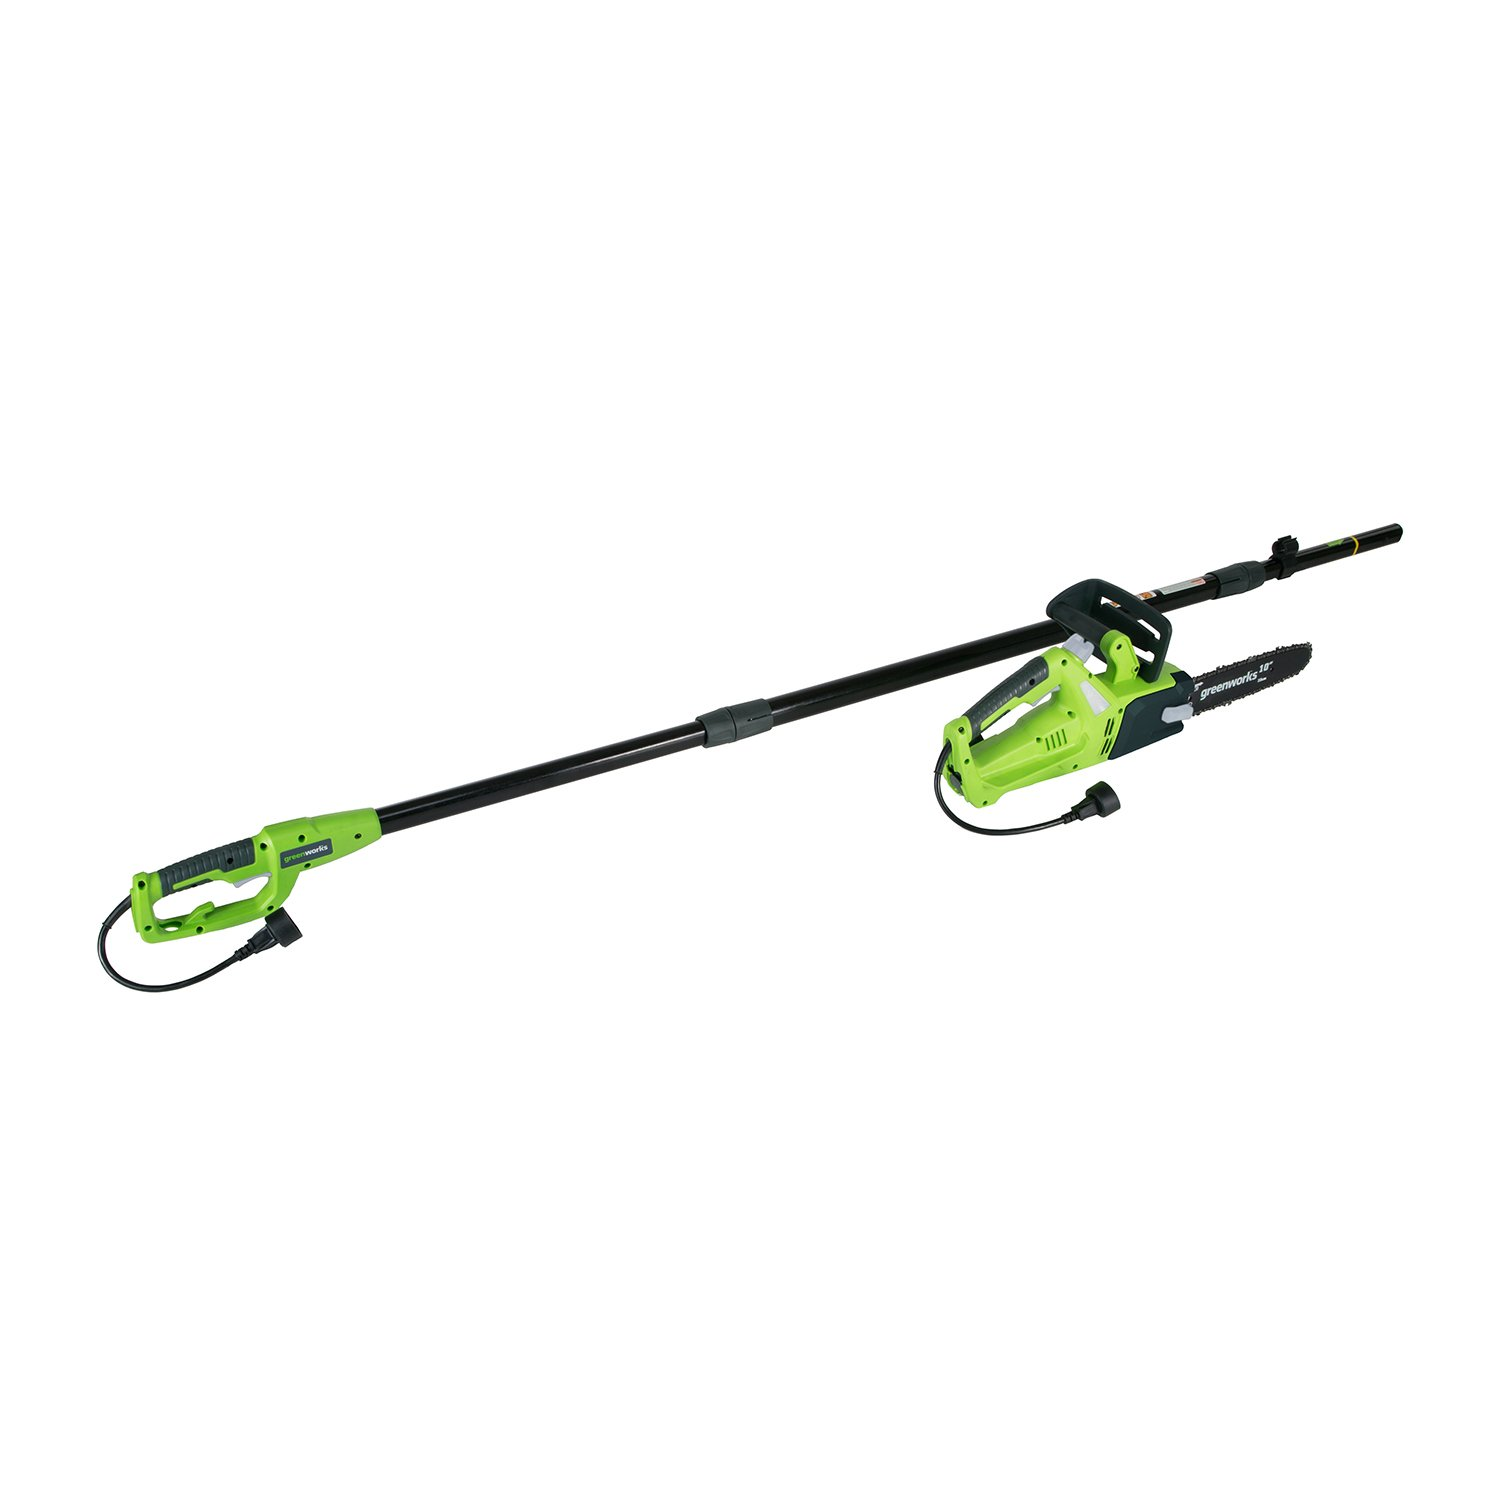 Greenworks 9.3 6 Amp Corded Chainsaw with Pole Saw Attachment PSCS06B00